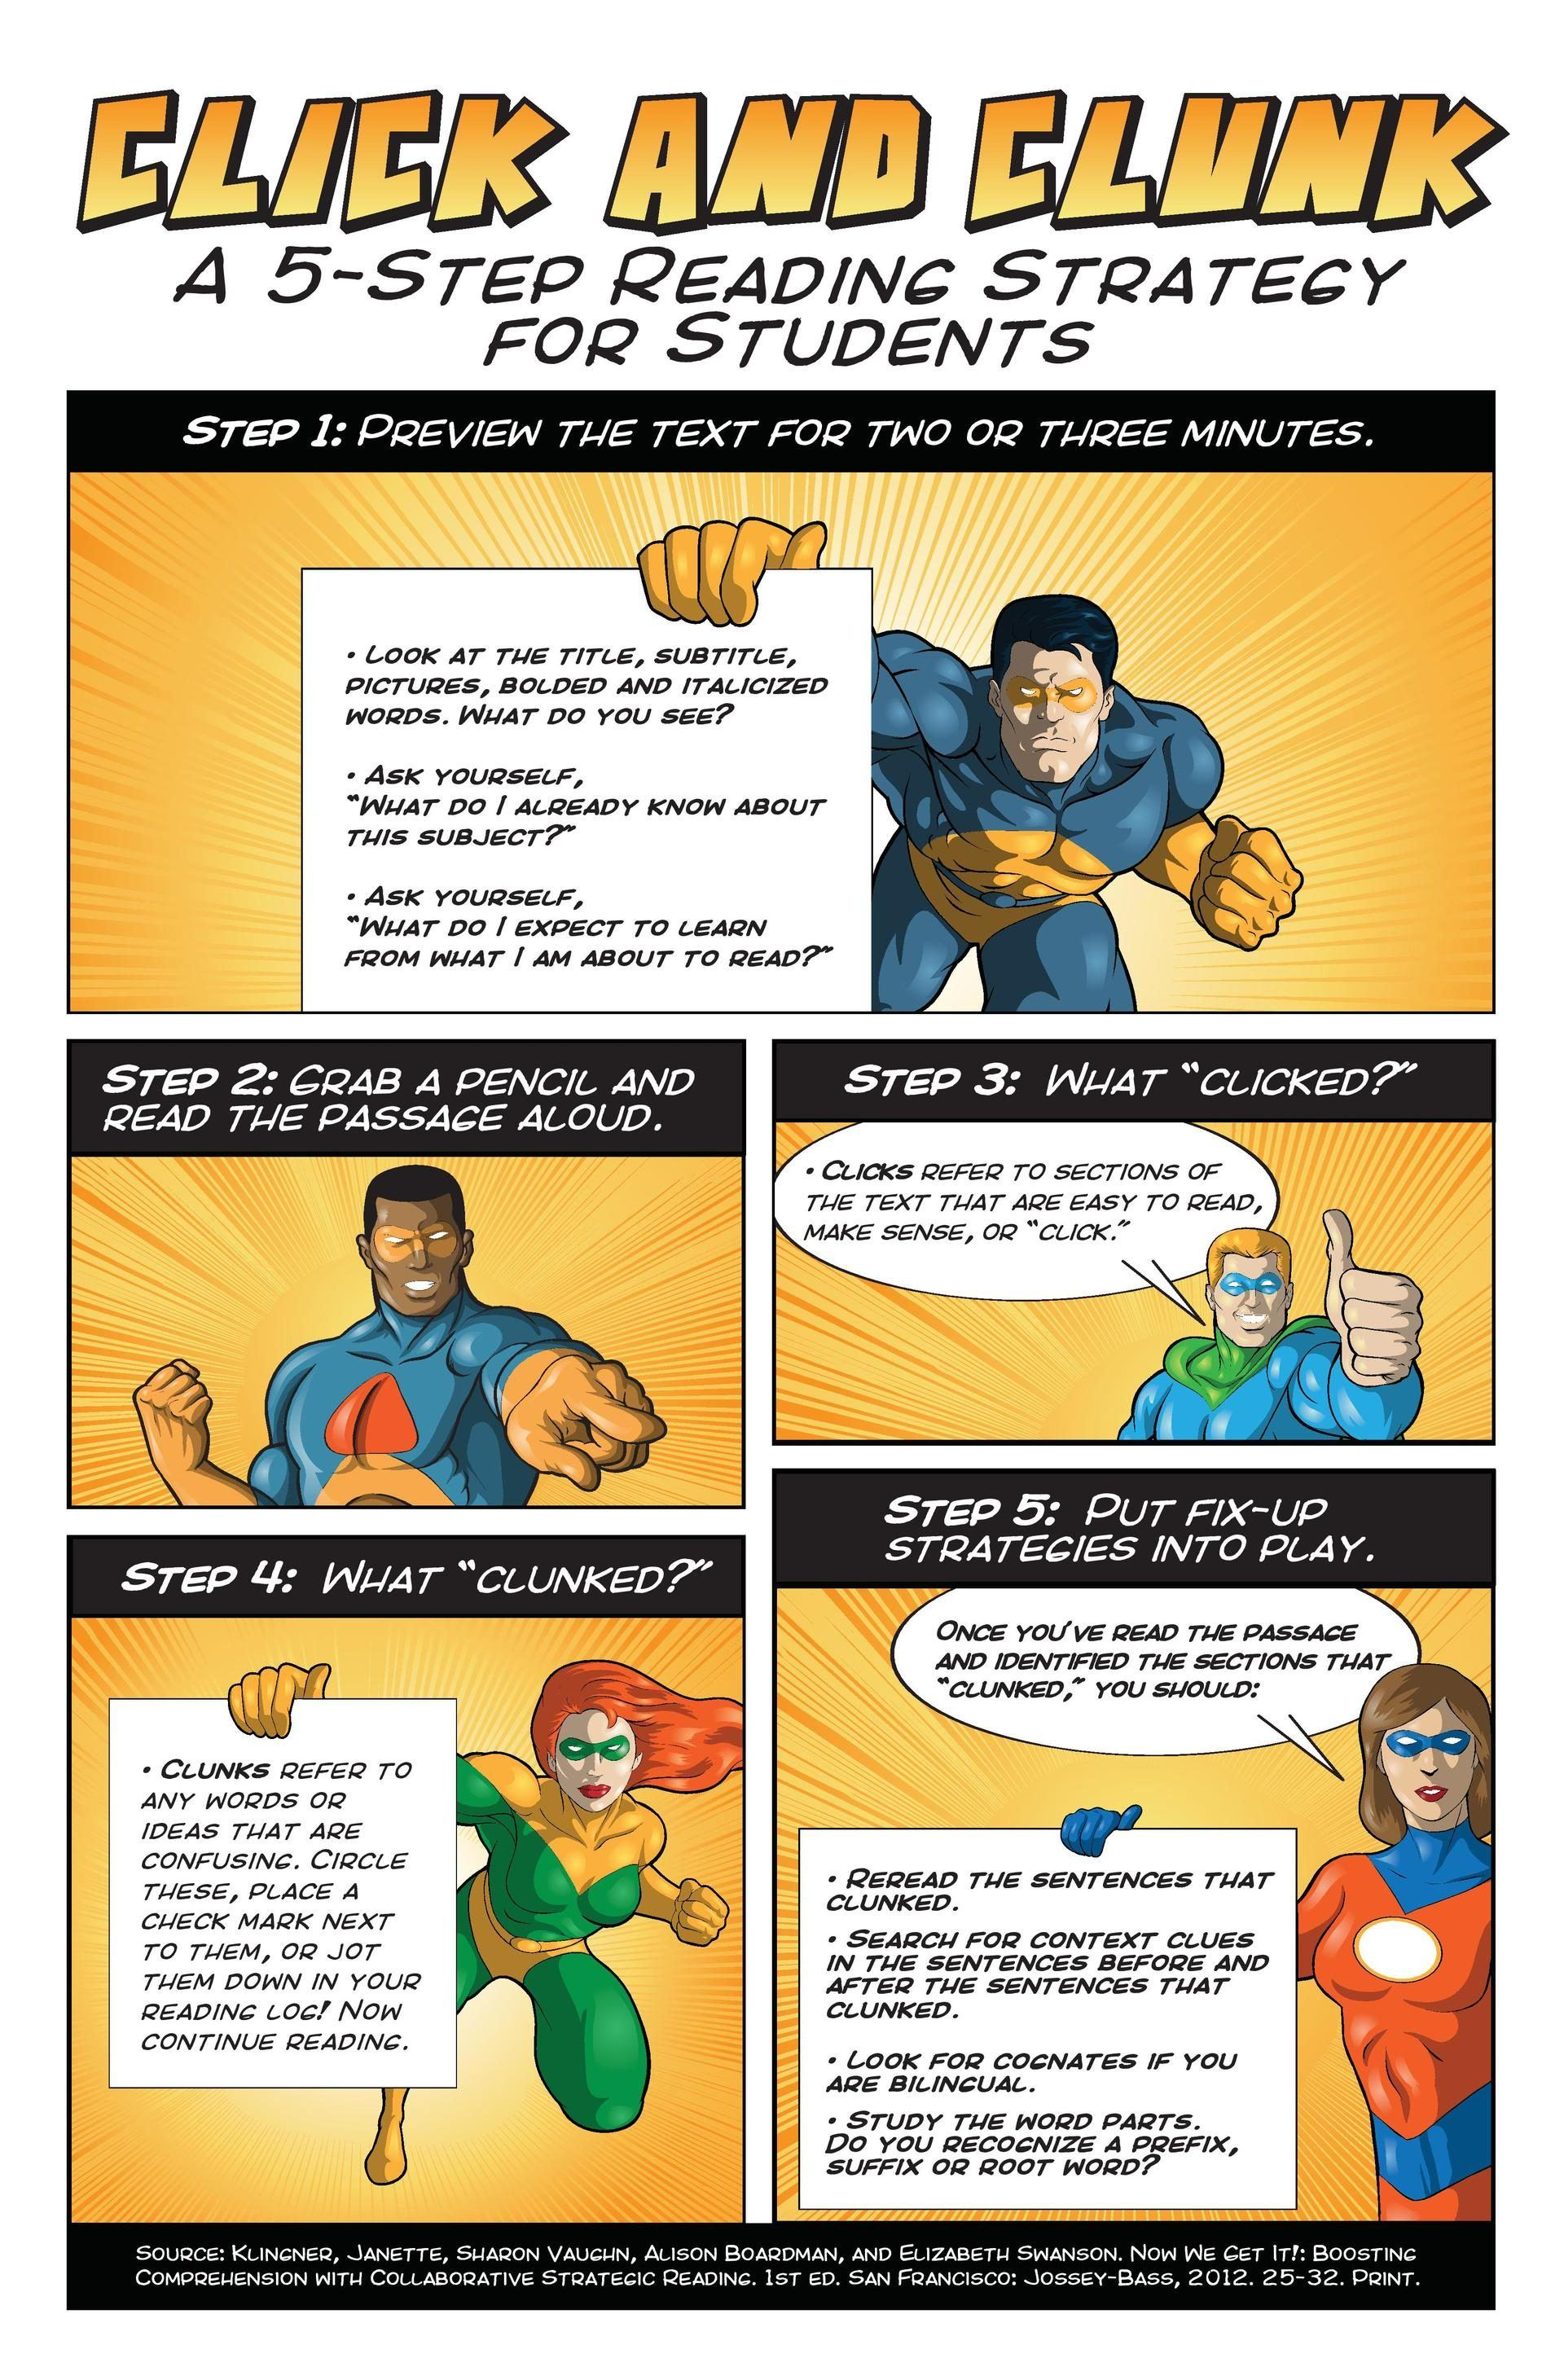 A 5-Step Reading Strategy For Students Infographic